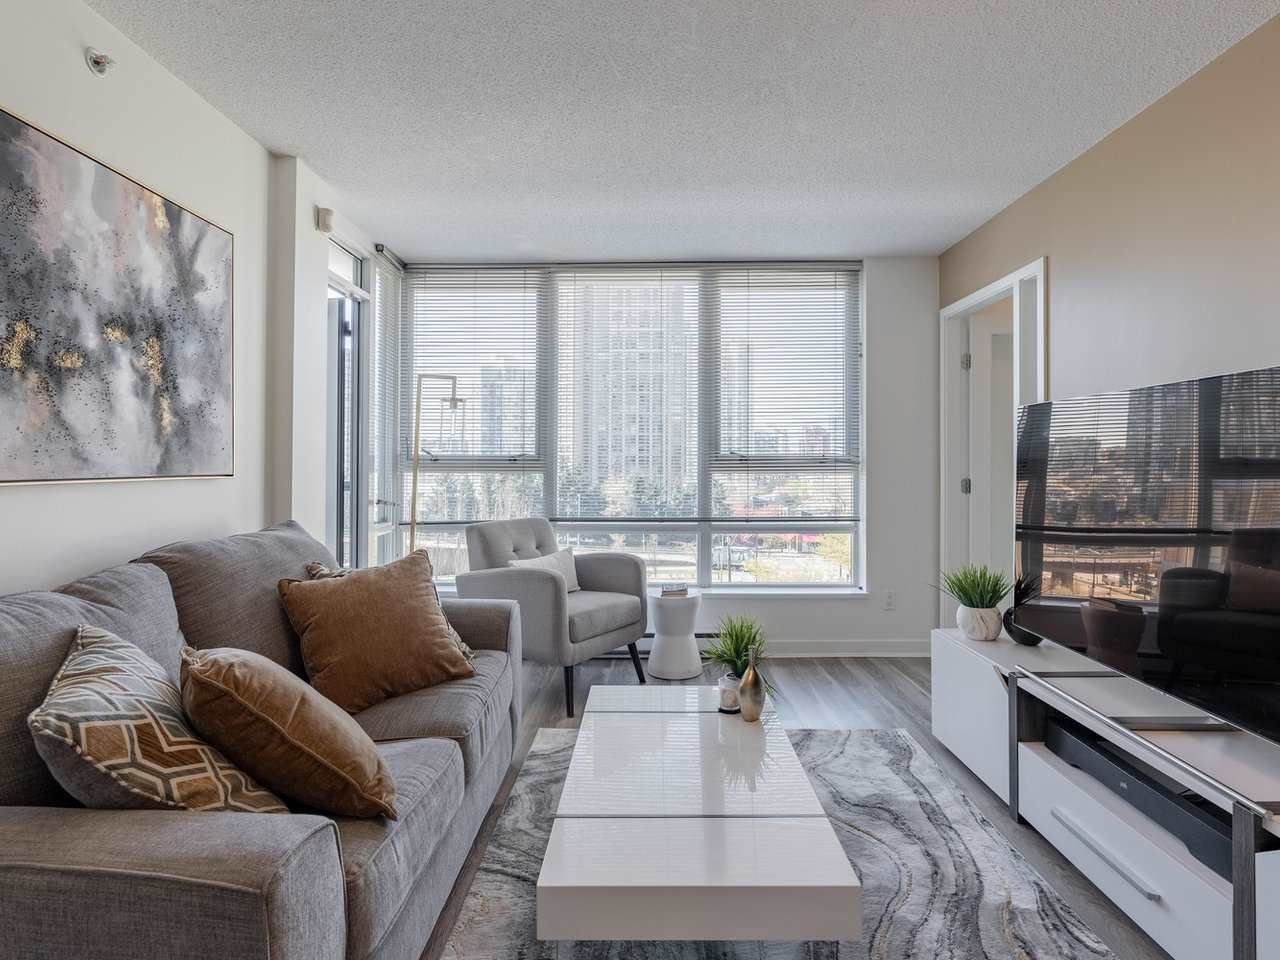 911 928 BEATTY STREET - Yaletown Apartment/Condo for sale, 1 Bedroom (R2566621) - #1